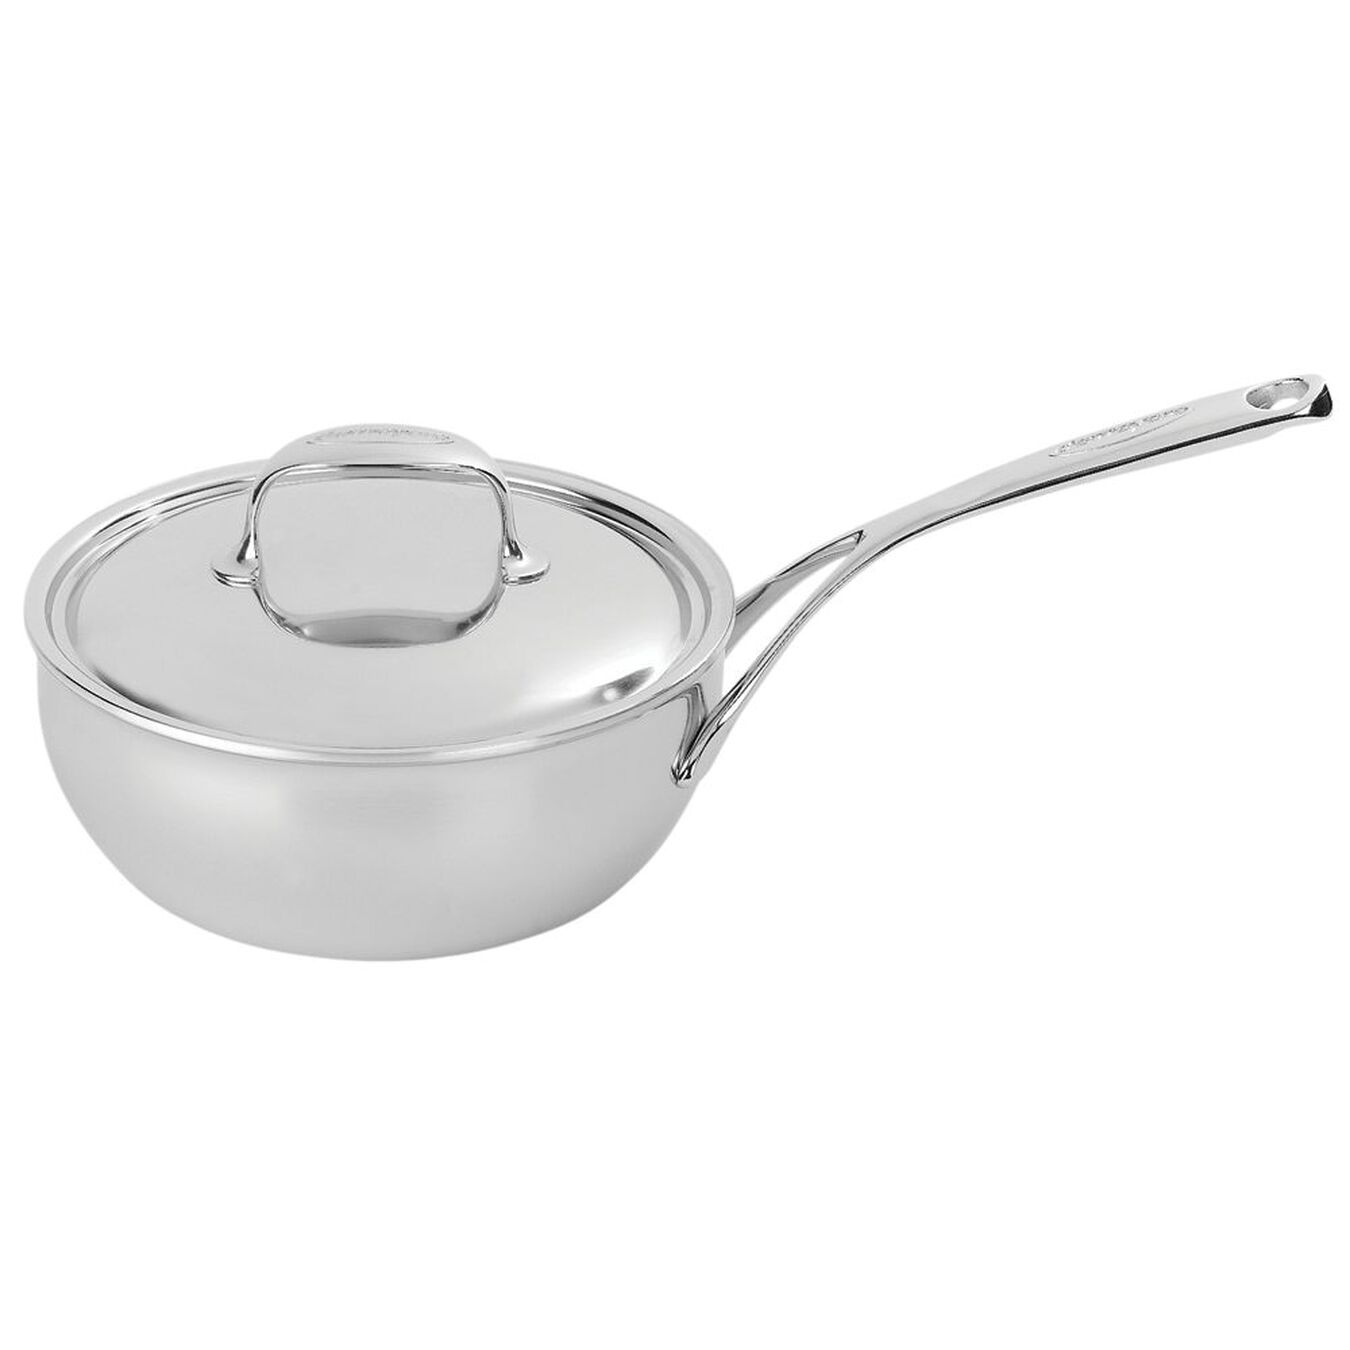 2.1-qt Stainless Steel Saucier,,large 1